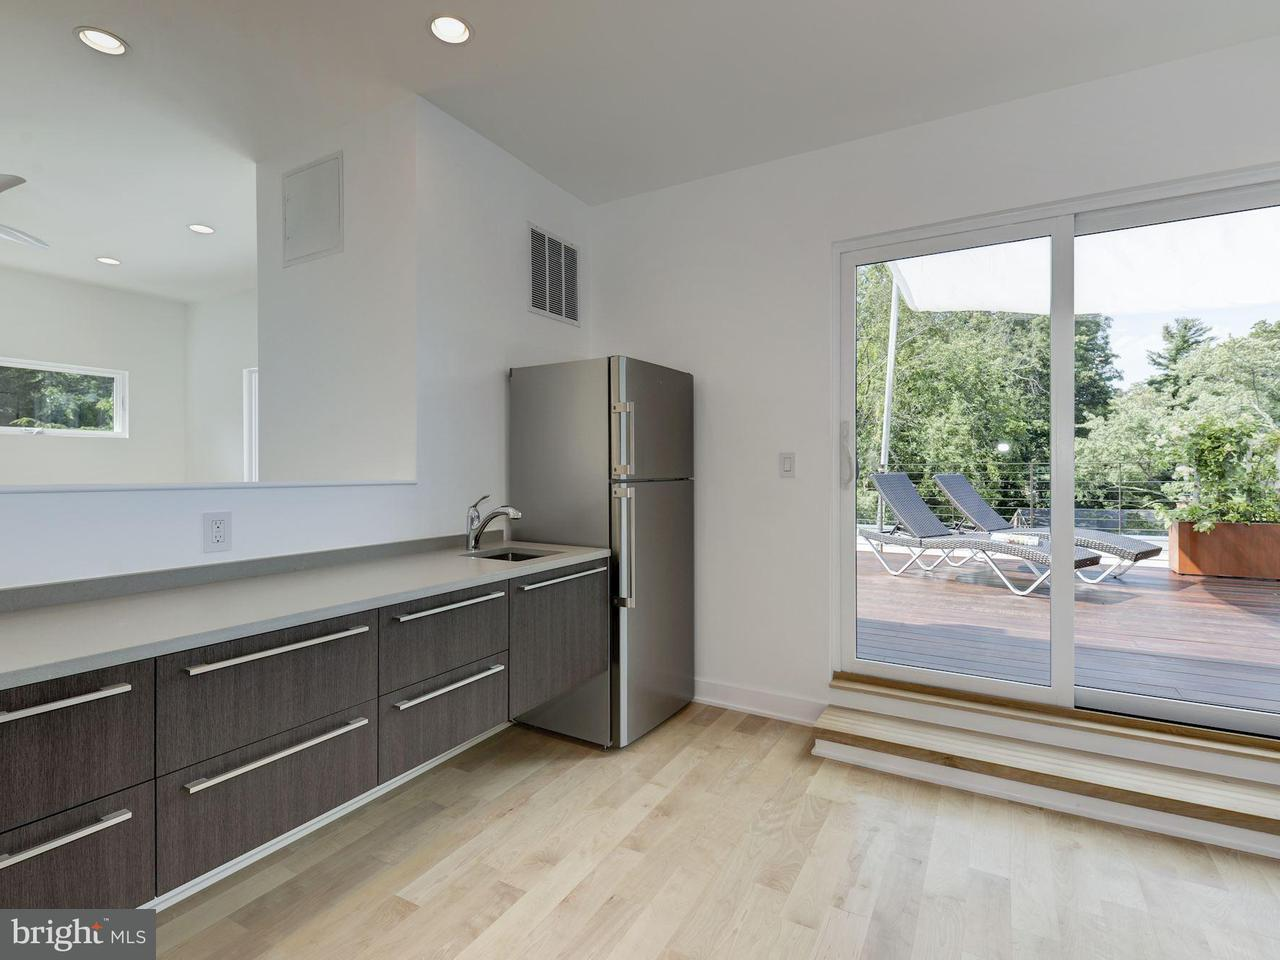 Additional photo for property listing at 6940 Oregon Ave NW  Washington, District Of Columbia 20015 United States